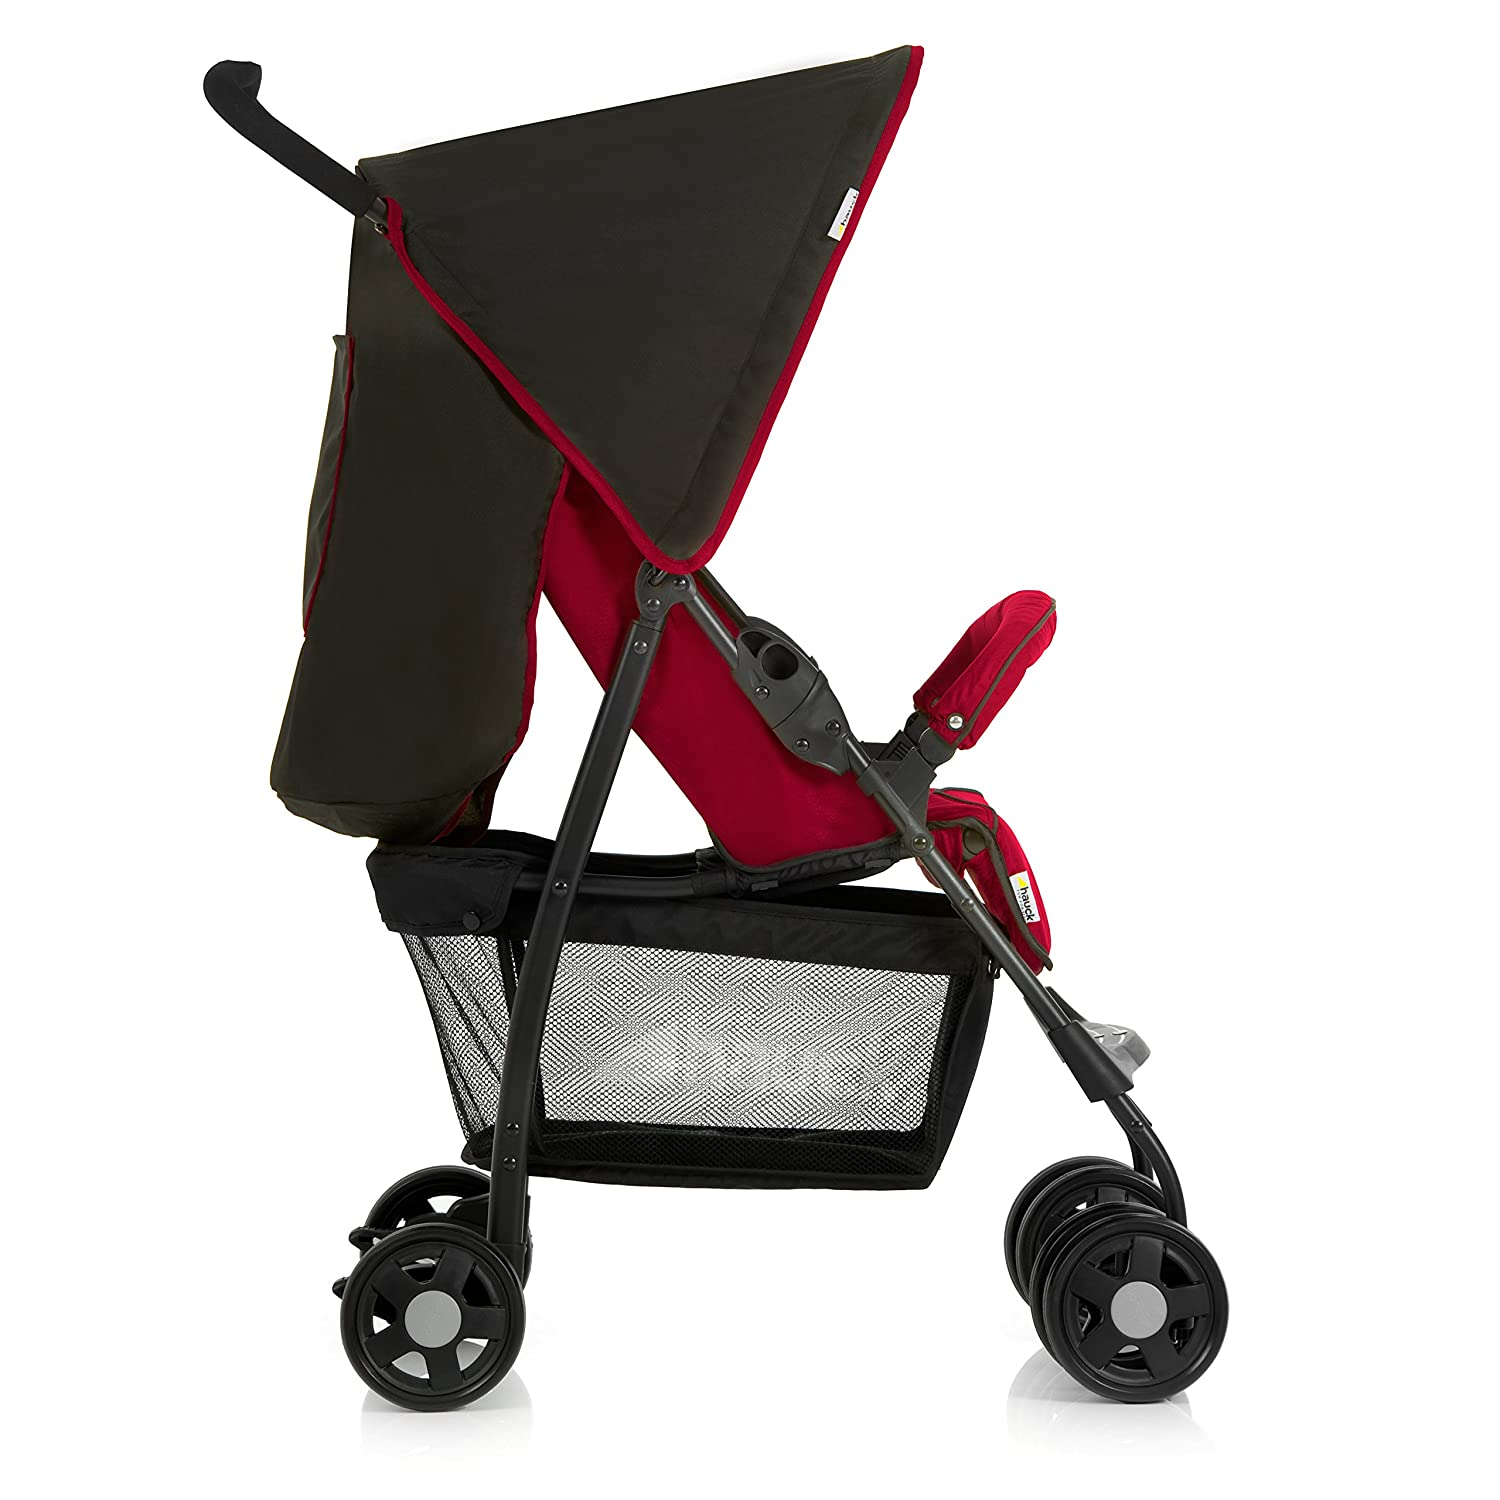 Pushchair from Birth to 15 kg with Lying Position Hauck Sport Easy and Compact Folding Sport Stroller Minnie Geo Pink Shopping Basket Bumper Bar